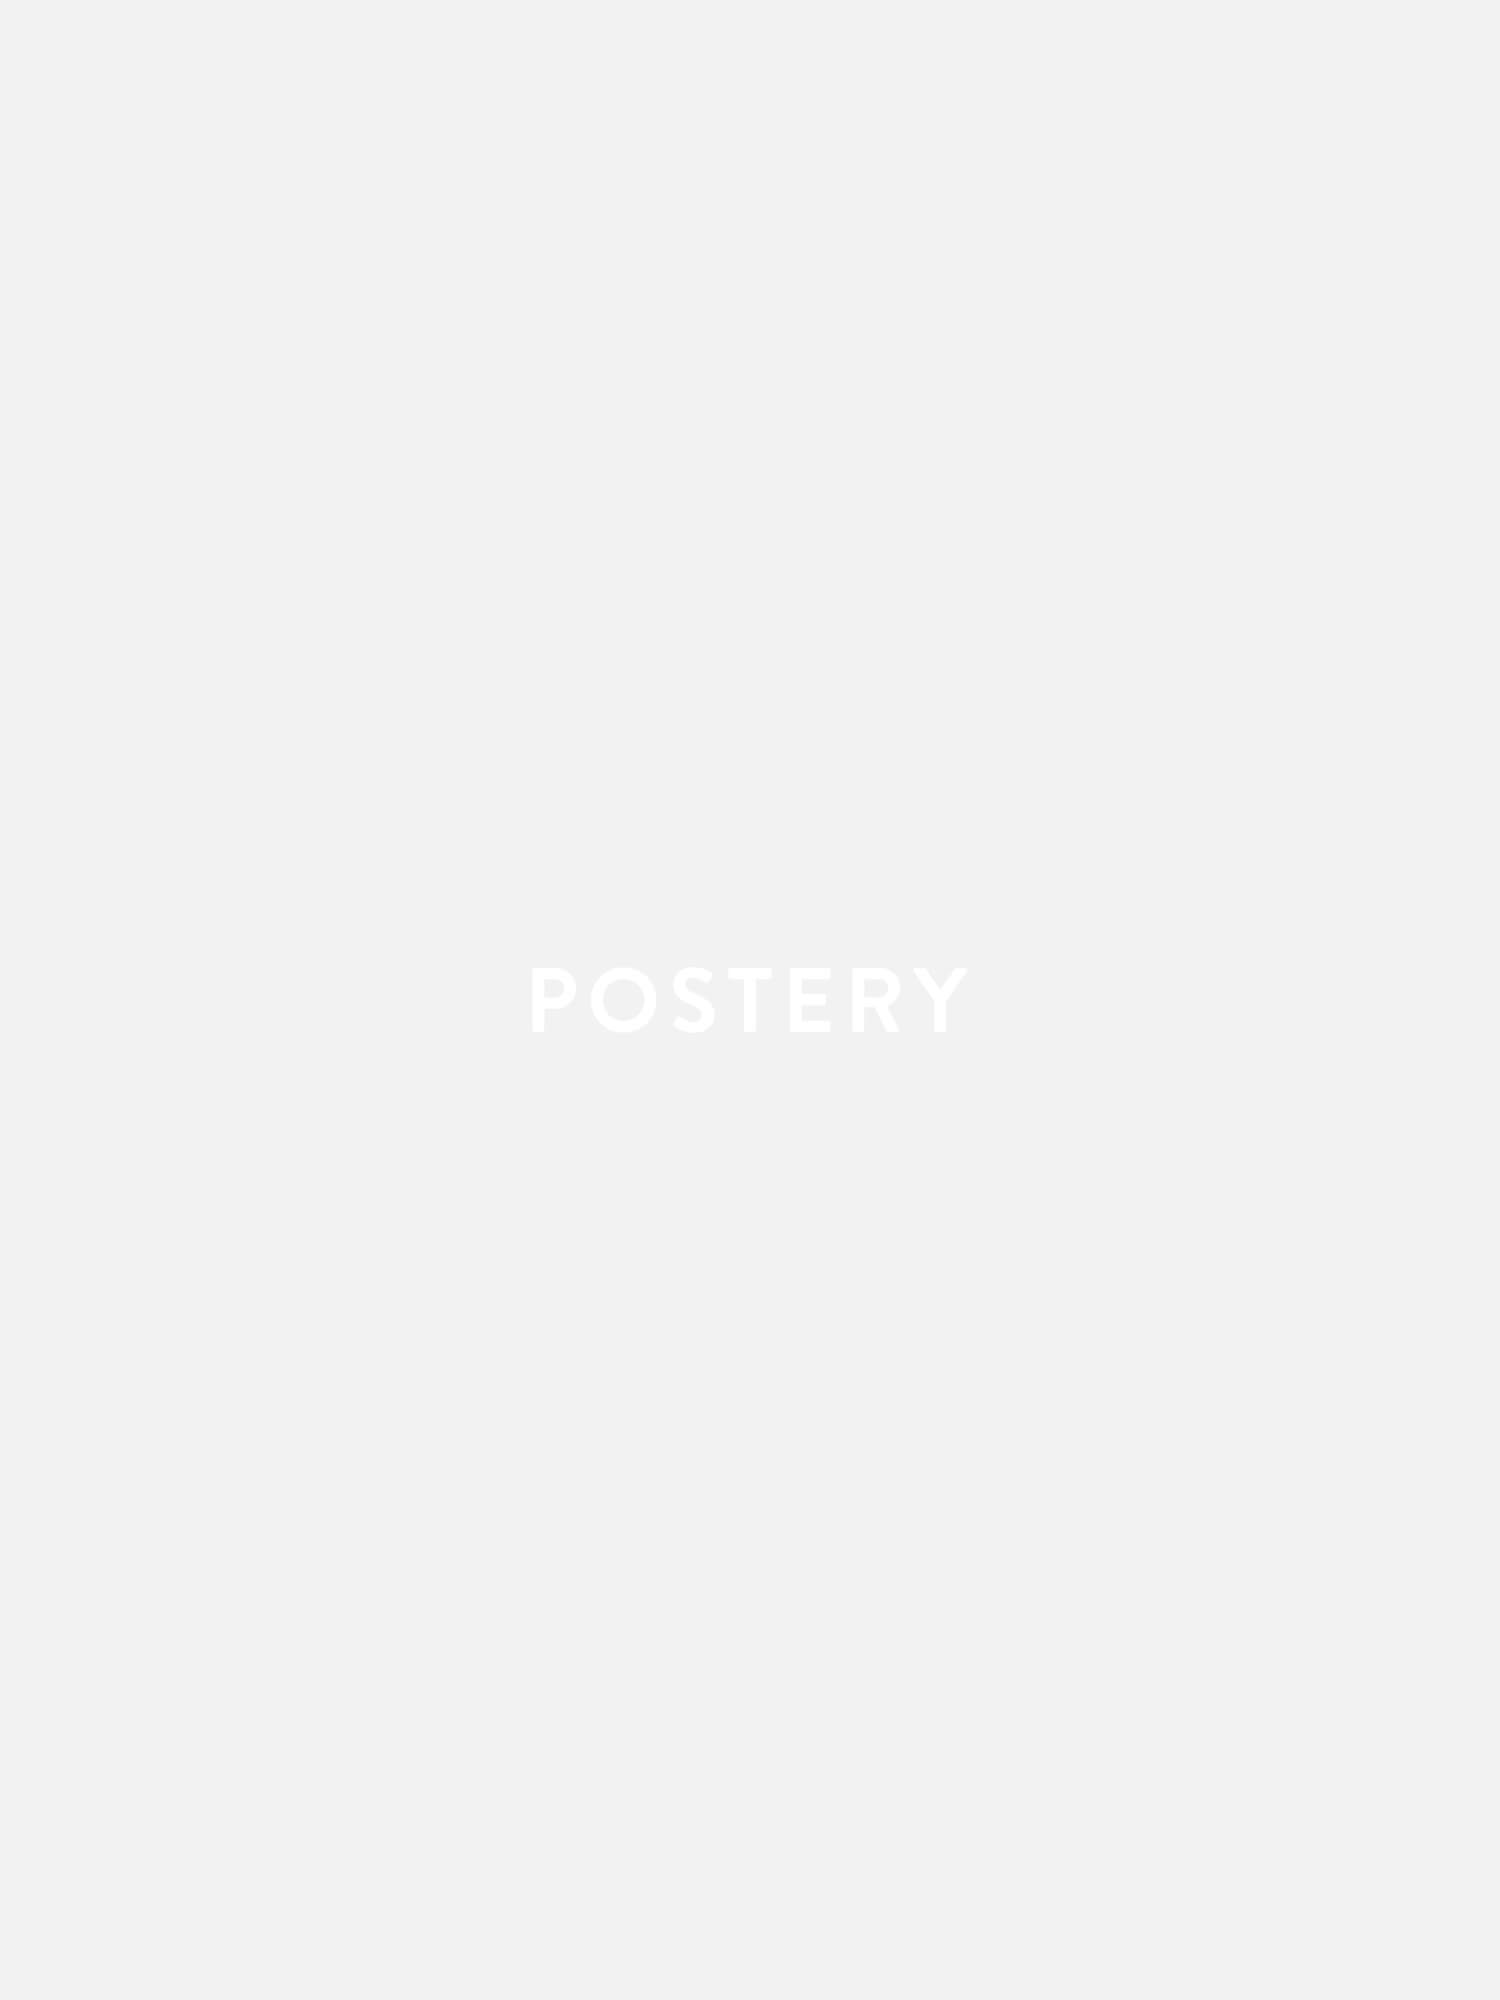 Banana Tree Leaves Poster